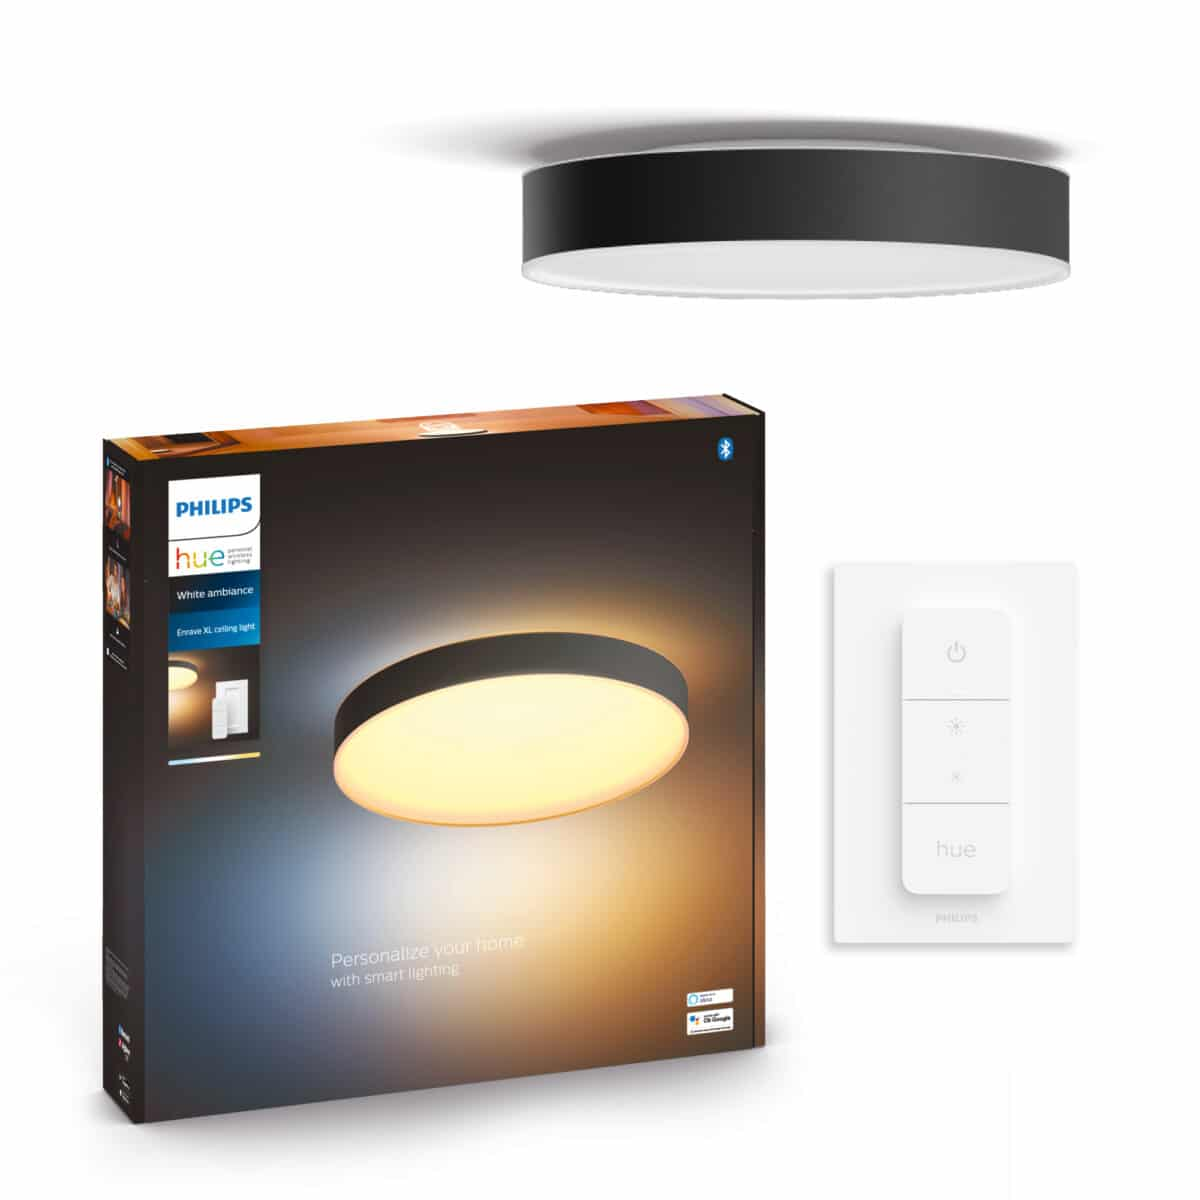 Philips Hue Enrave ceiling light product